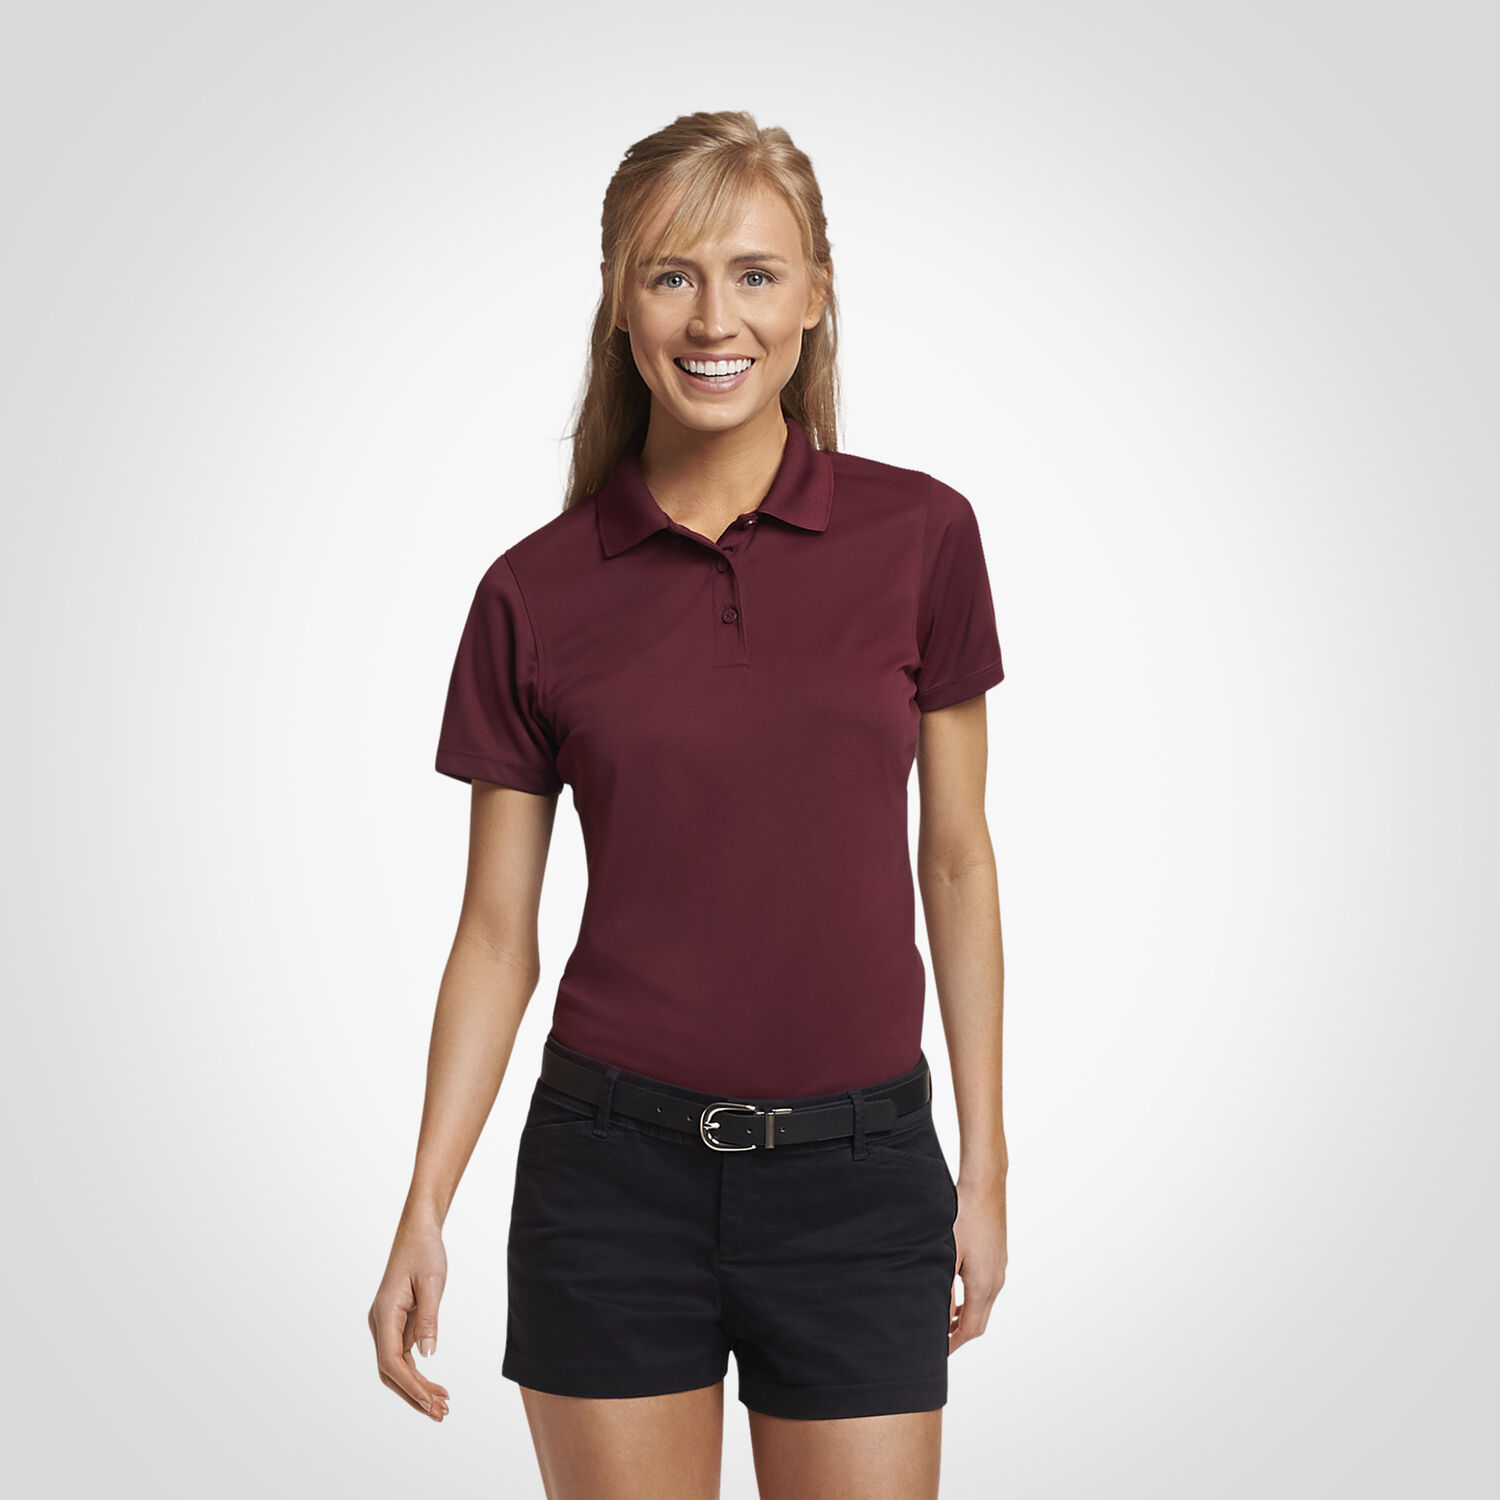 d274a293010 Women s Dri-Power® Performance Golf Polo - Russell US